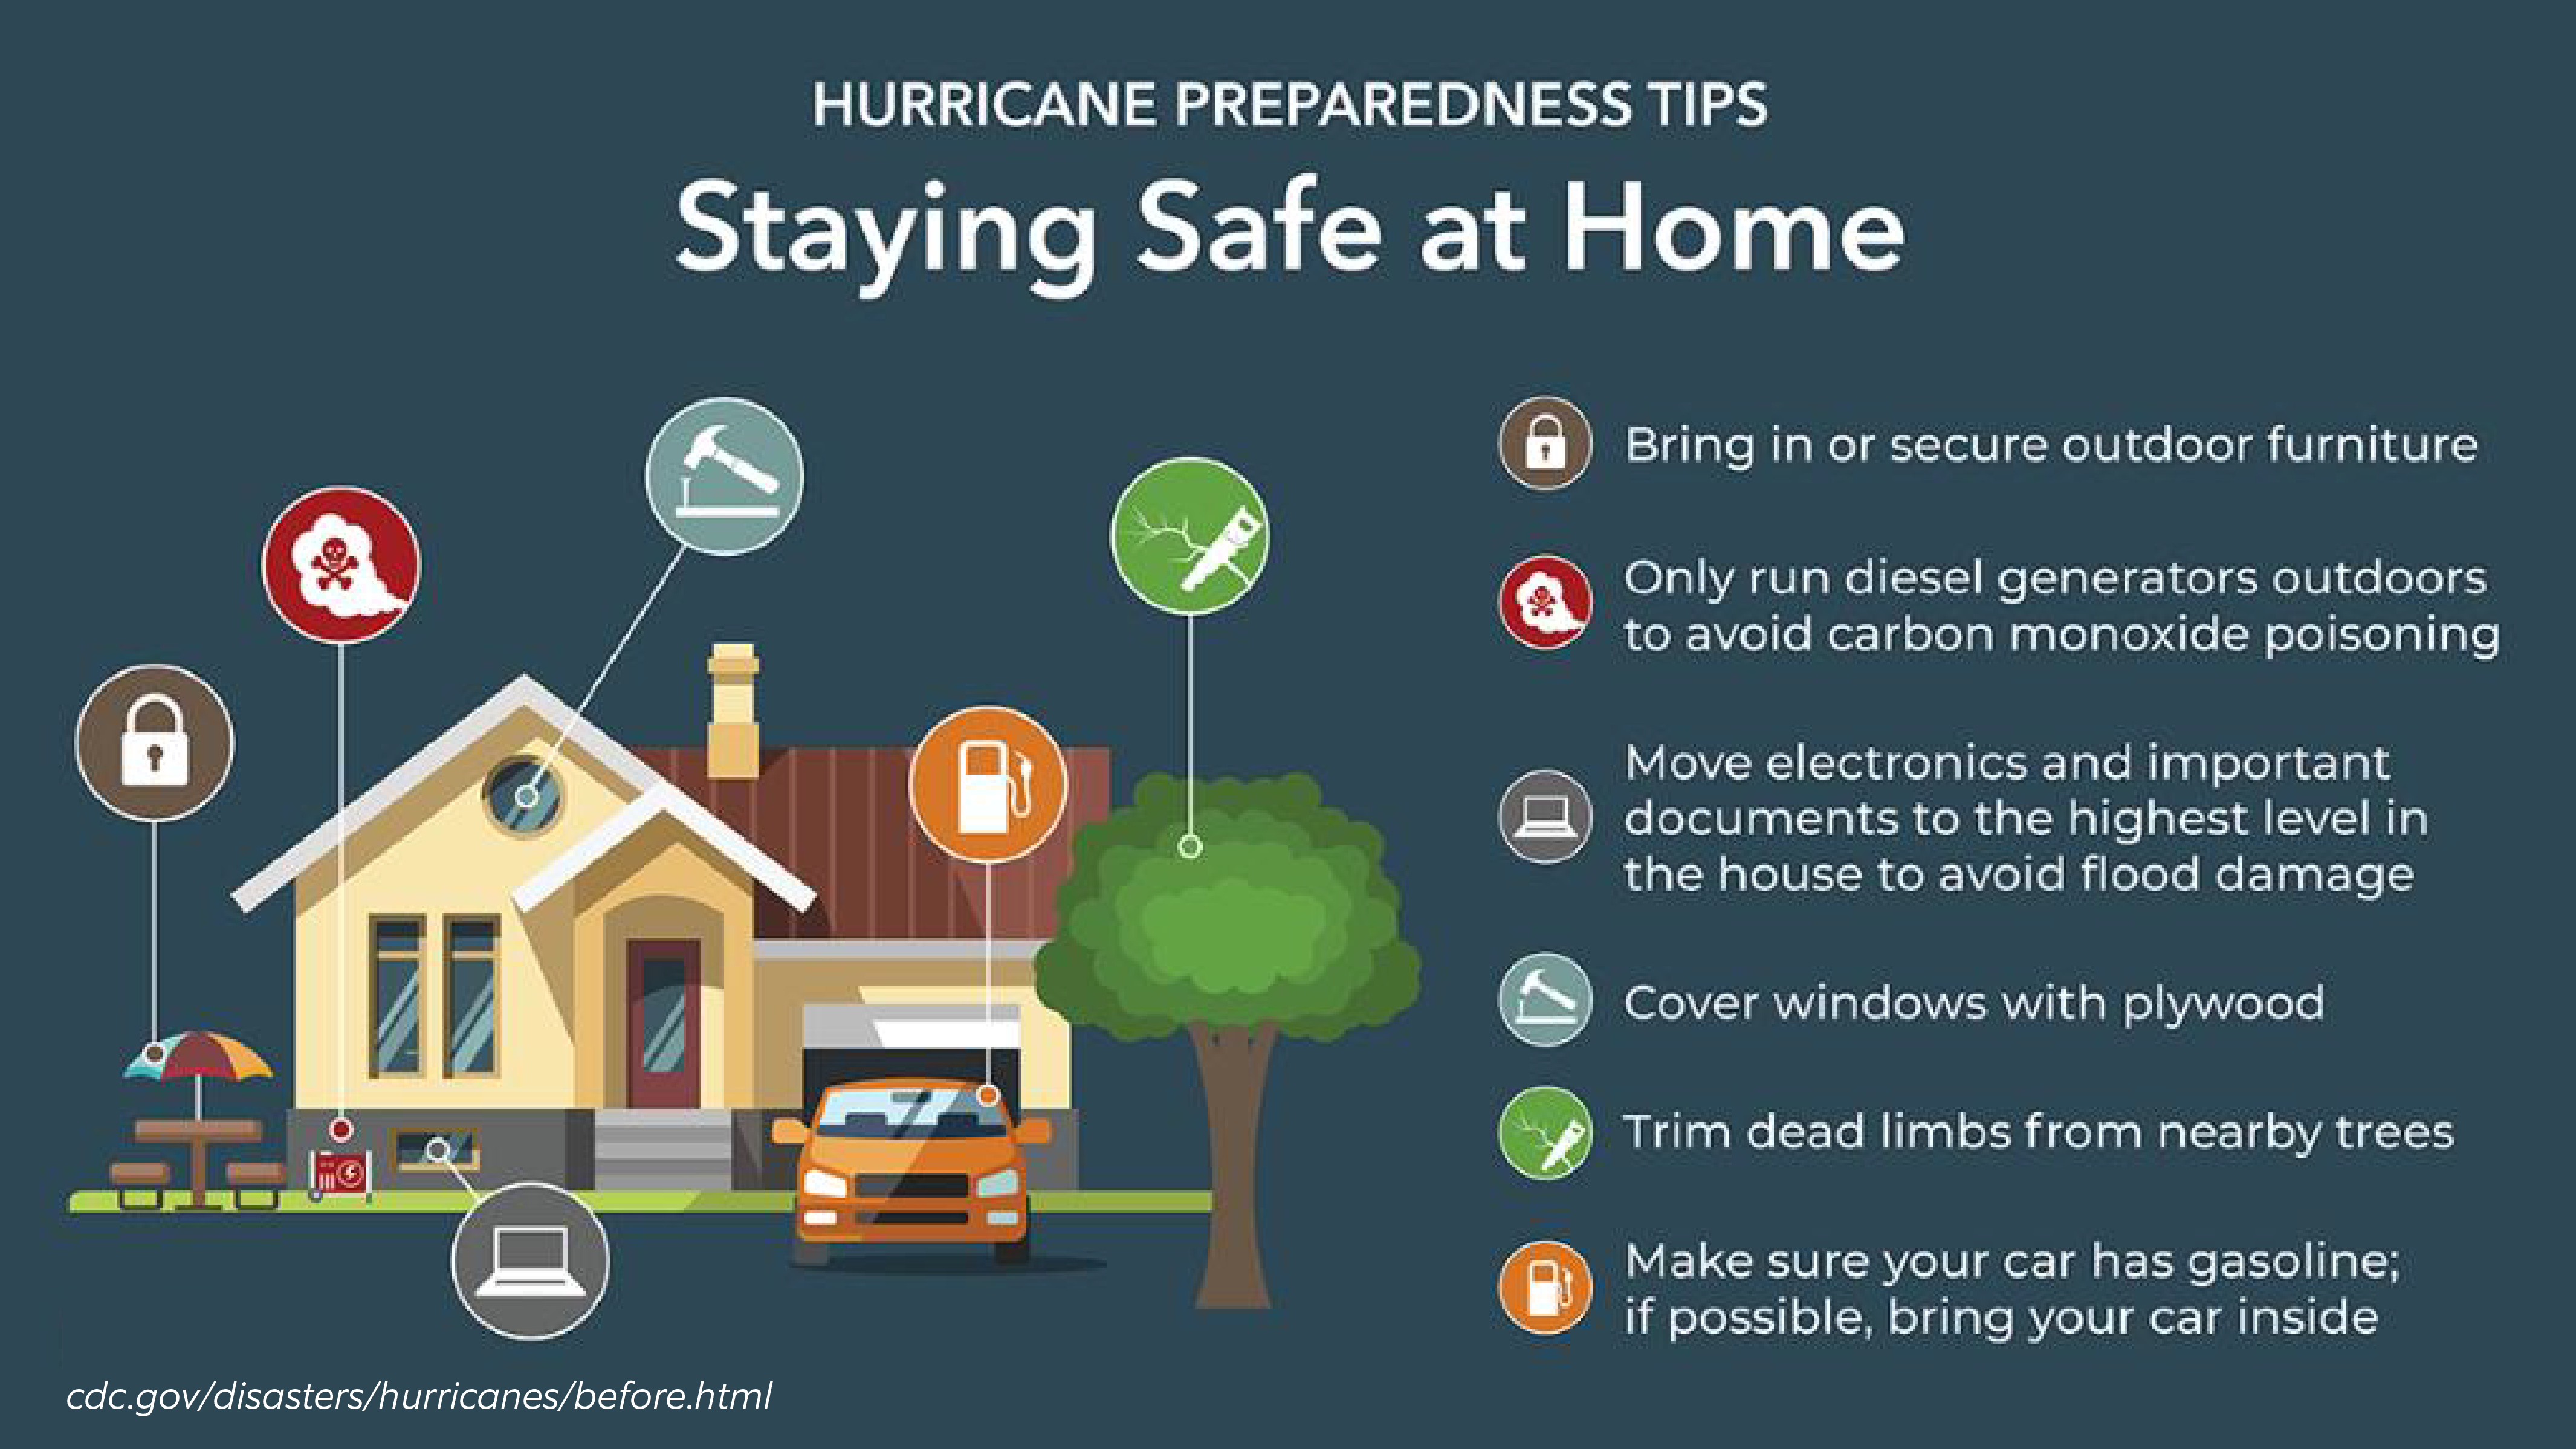 Hurricane_preparedness-_staying_safe_at_home.png